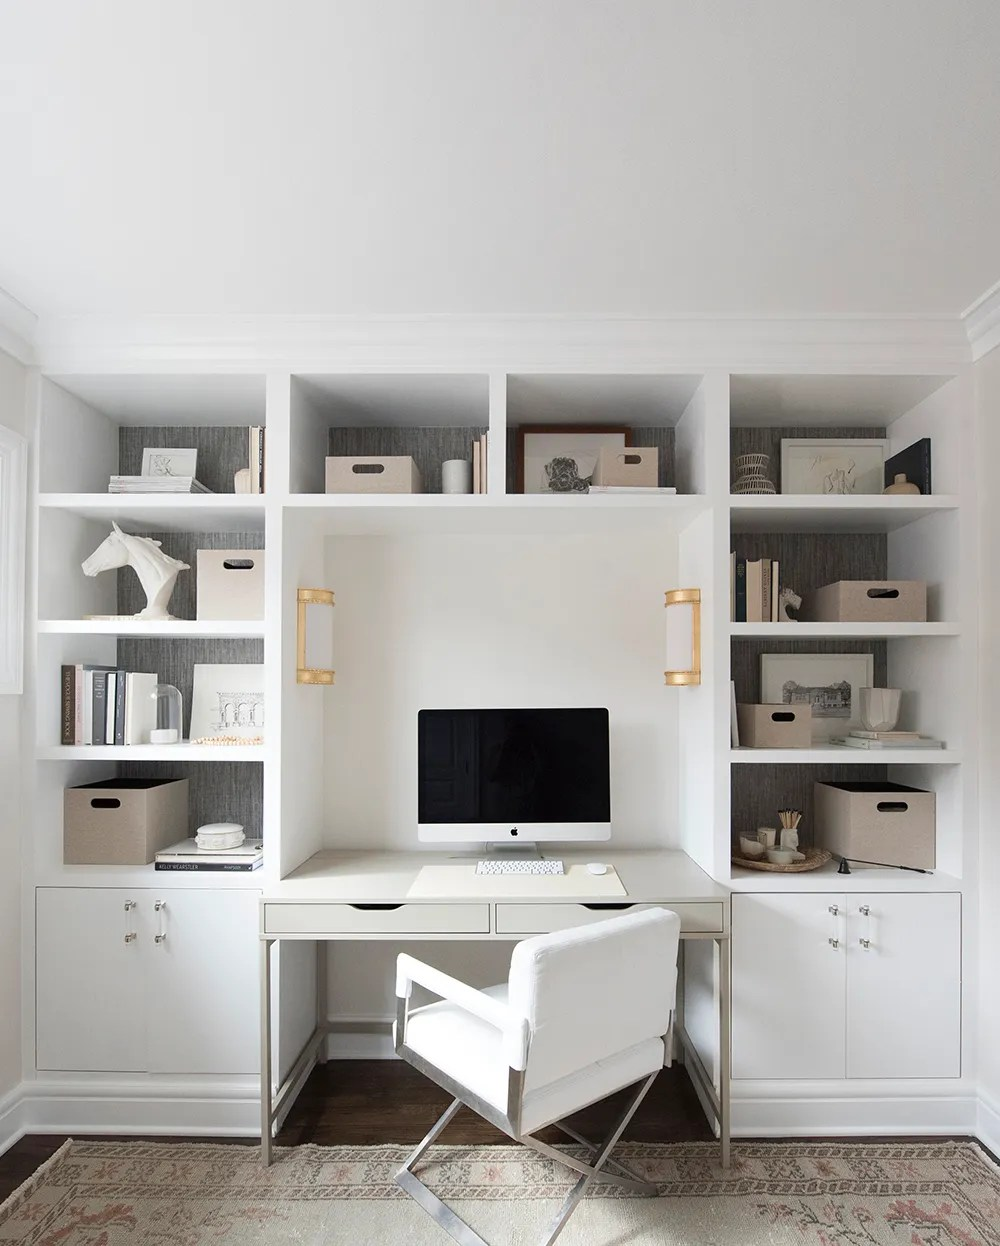 DIY Built-Ins and Office Organization - roomfortuesday.com